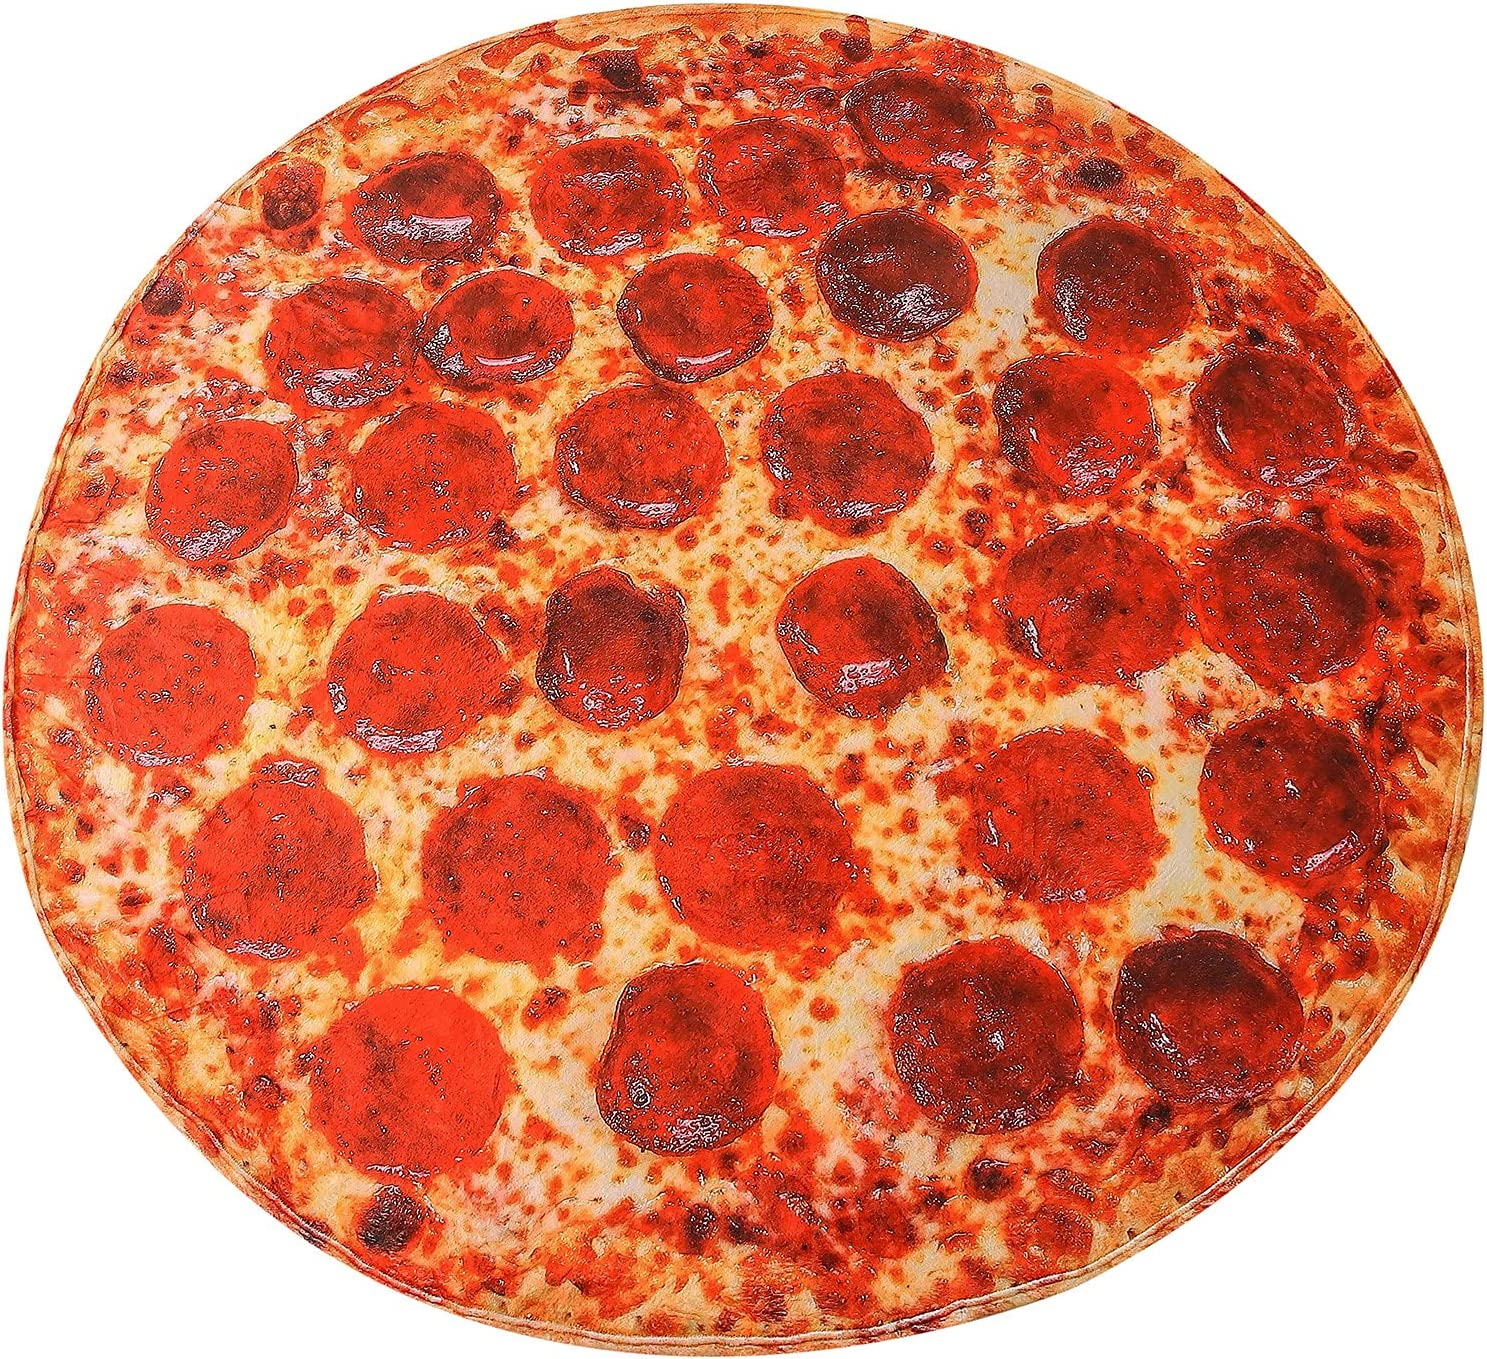 Pizza Blanket - Soft Pepperoni Kids for Adult and 67% OFF of fixed price We OFFer at cheap prices